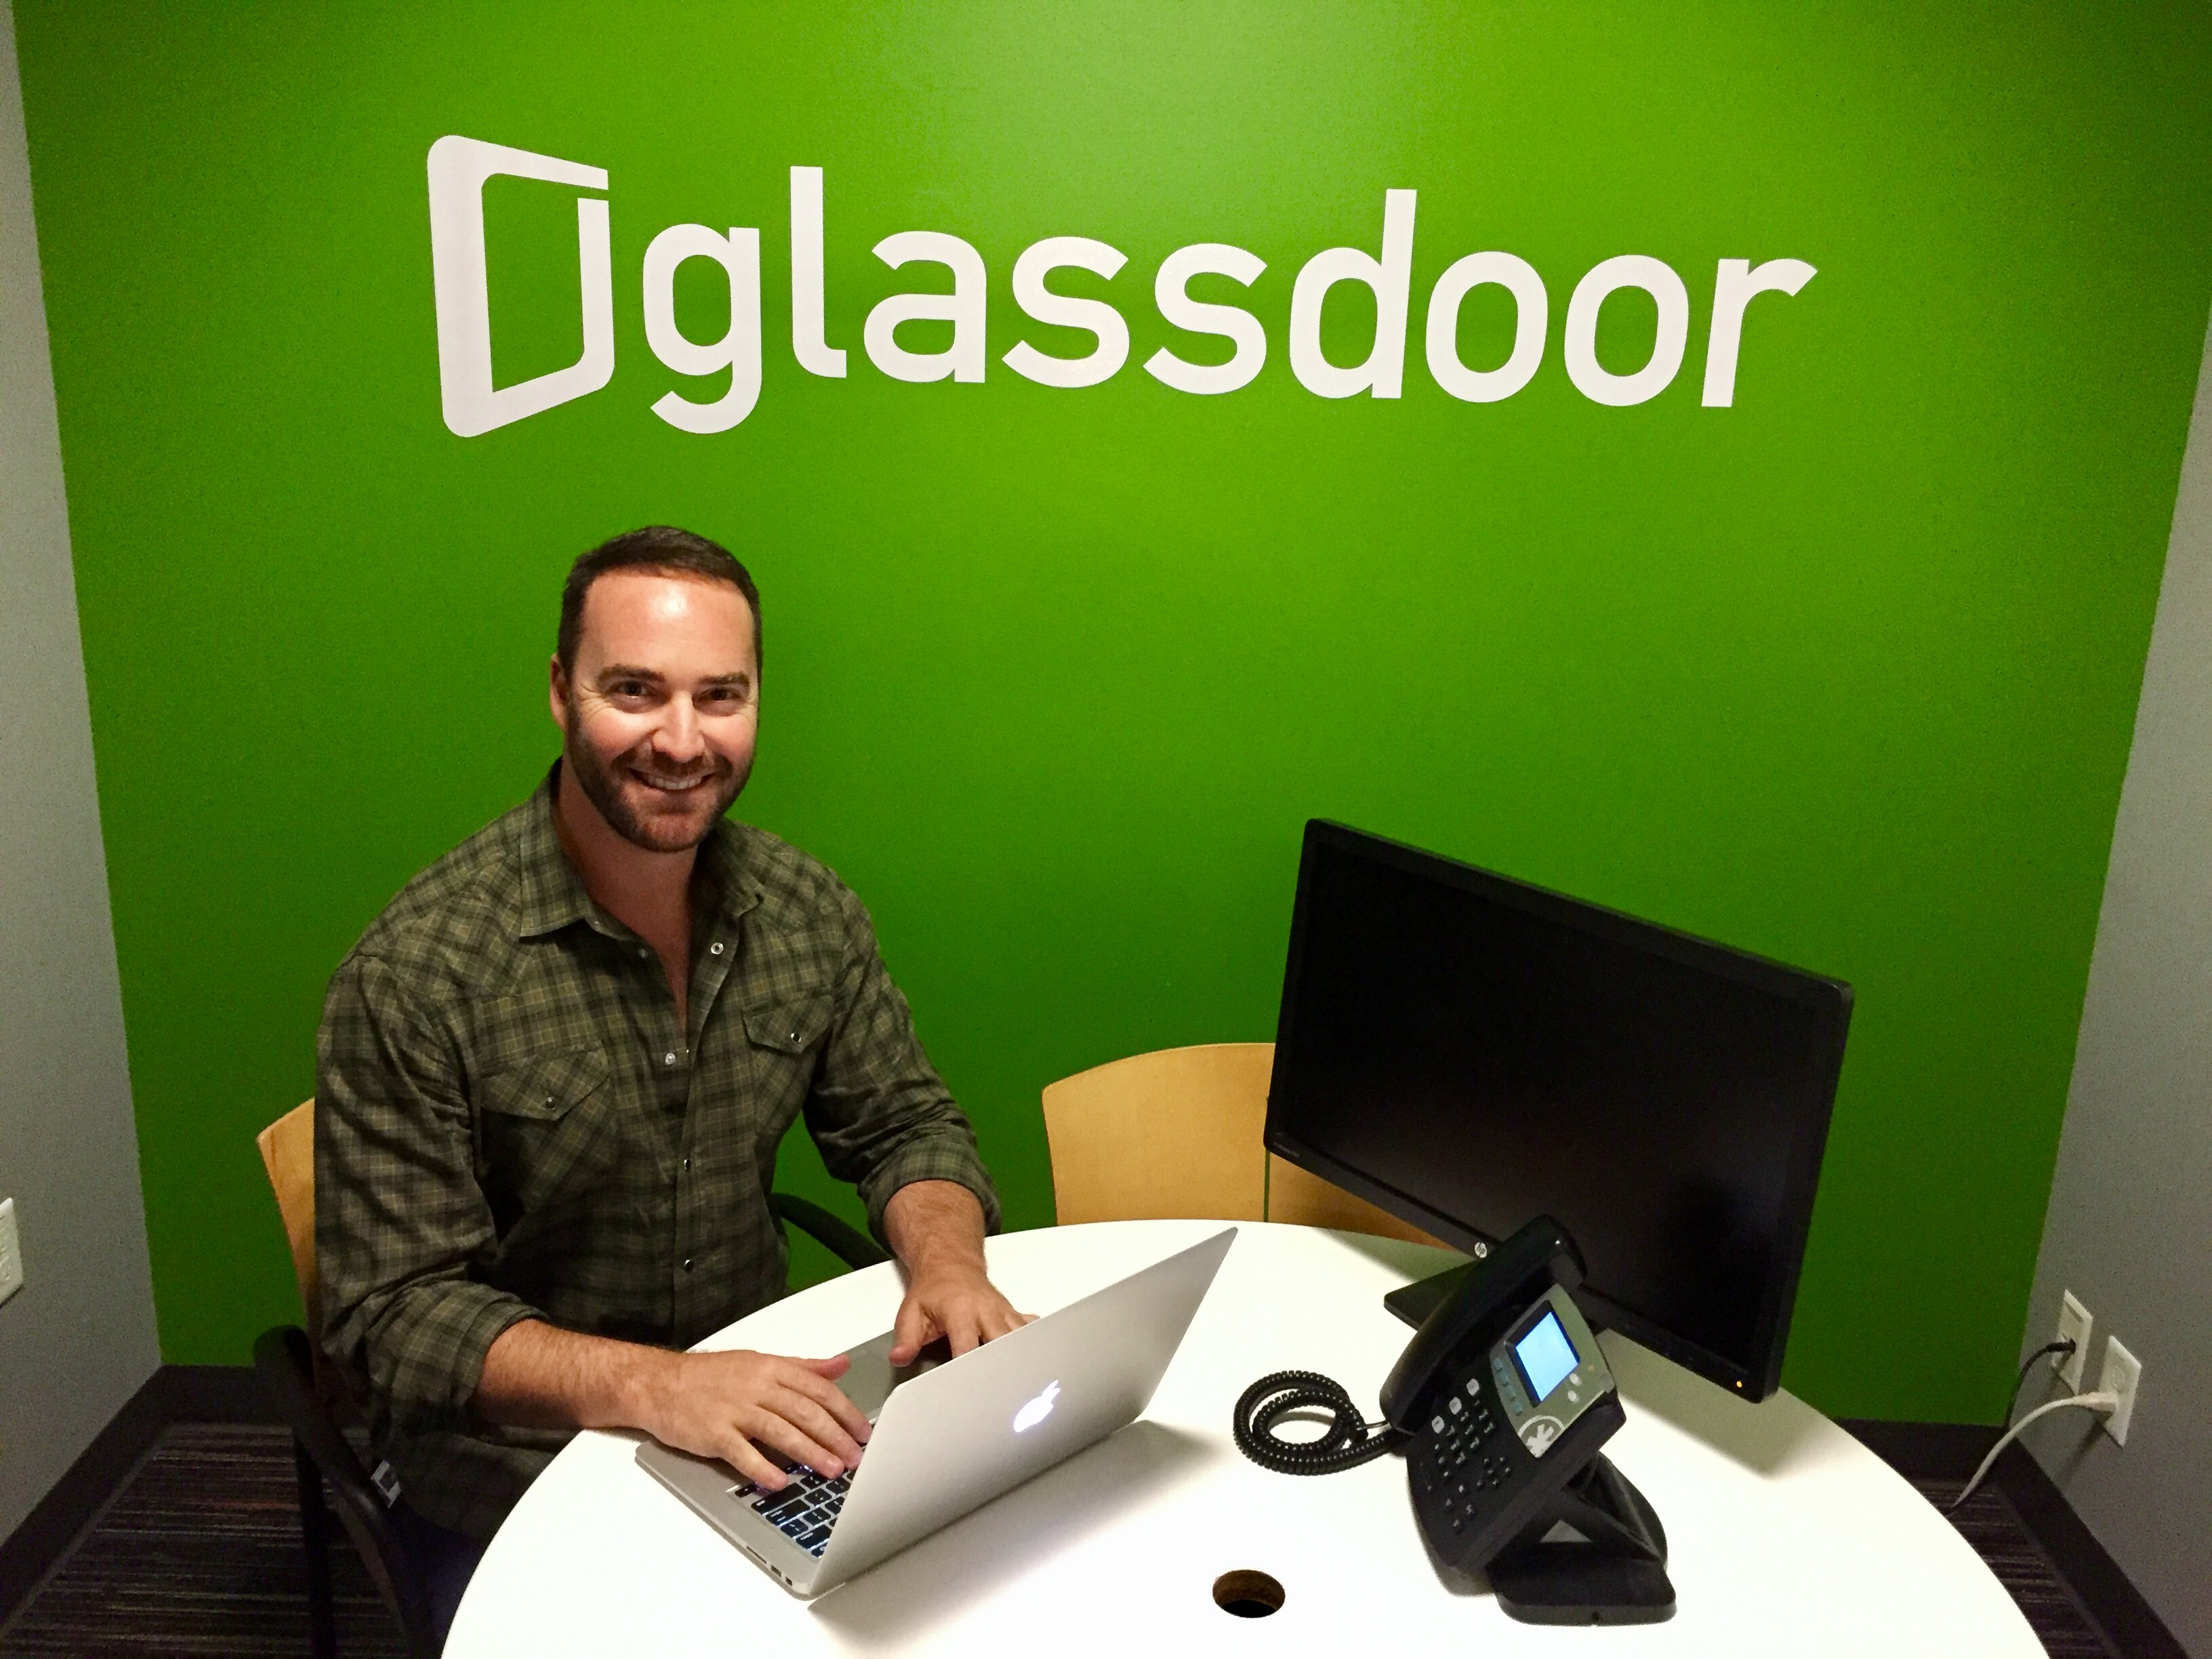 Why Pr And Marketing Companies Should Not Ignore Glassdoor Adweek